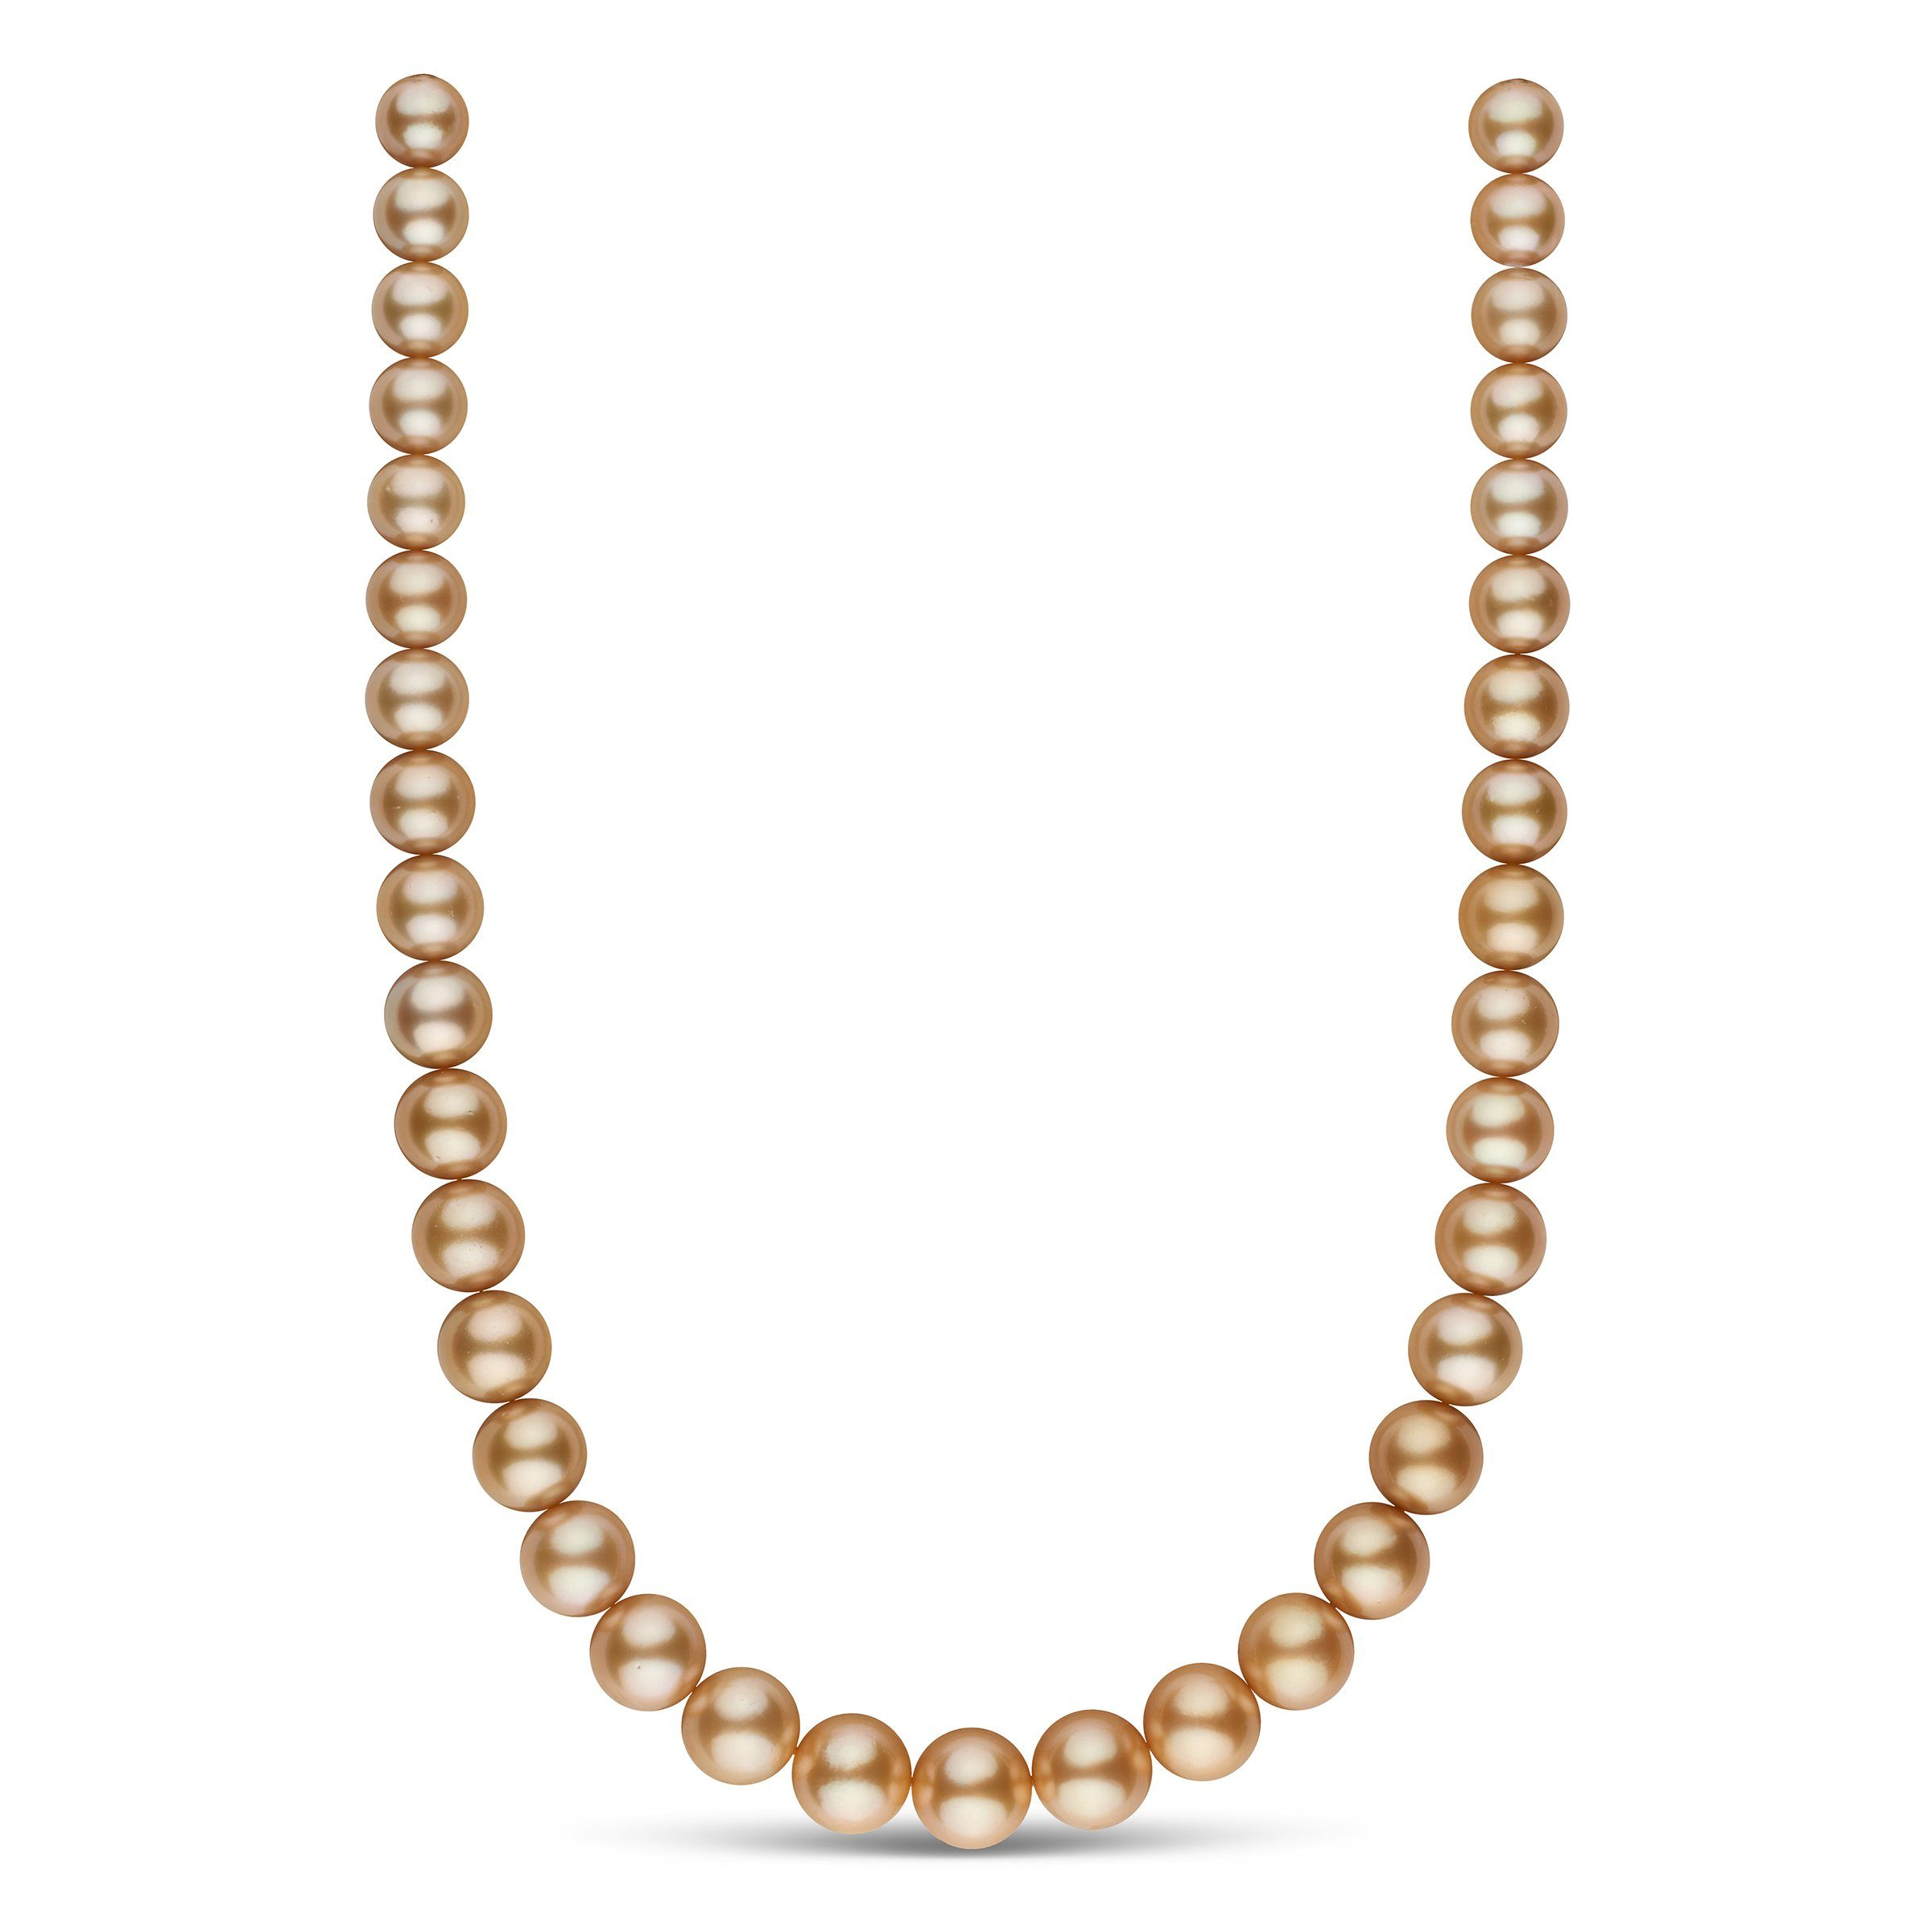 10.2-13.0 mm AA+/AAA Golden South Sea Round Pearl Necklace